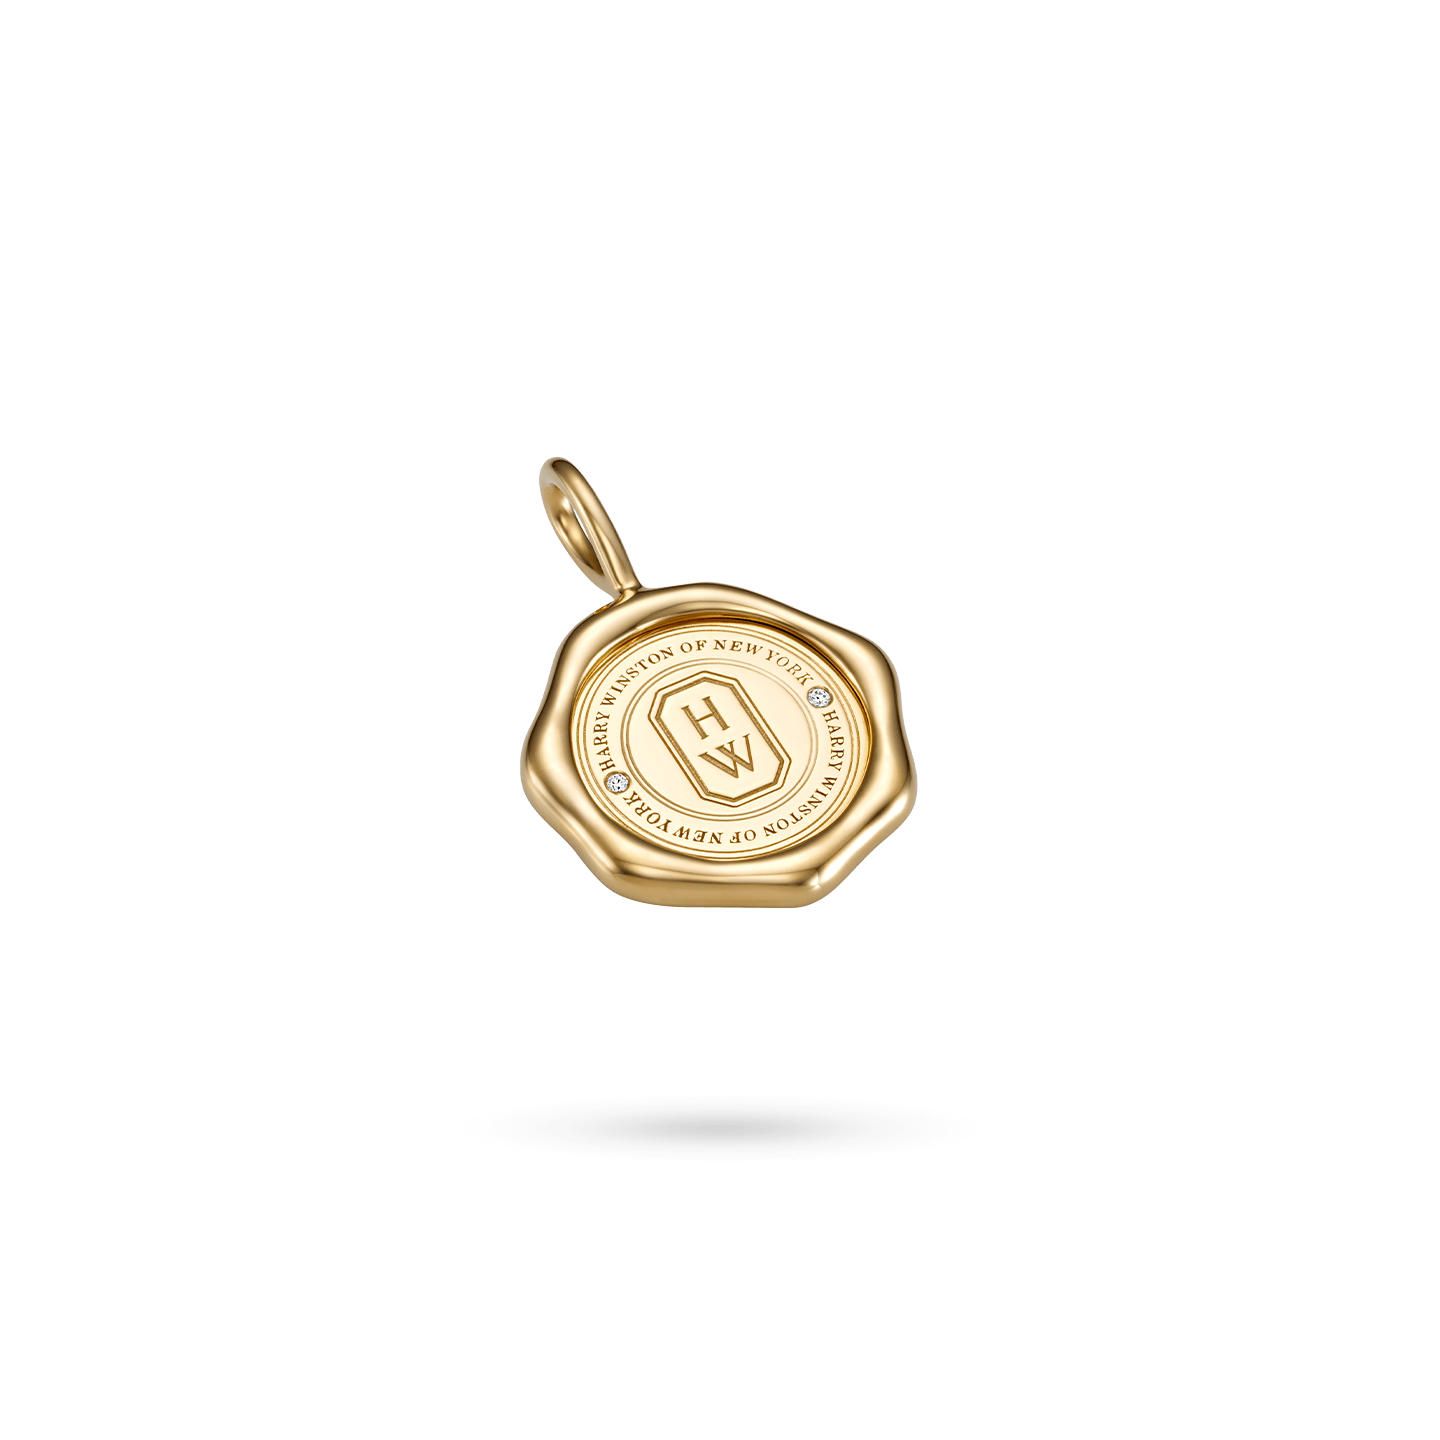 Sealed by Harry Winston Charm in Yellow Gold, Product Image 1